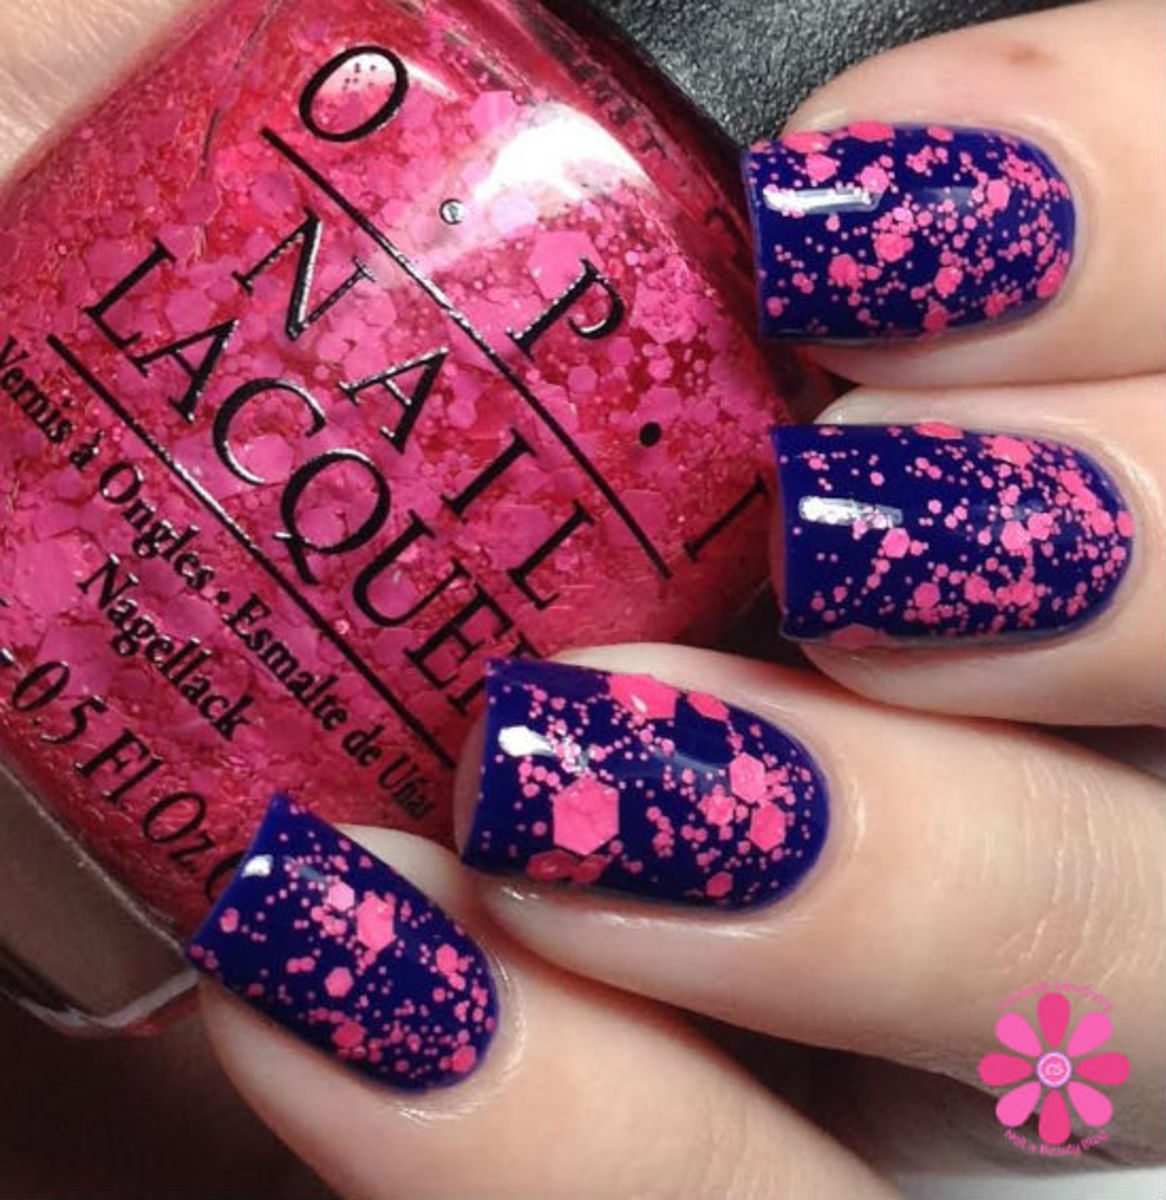 """OPI's """"On Pinks and Needles."""""""